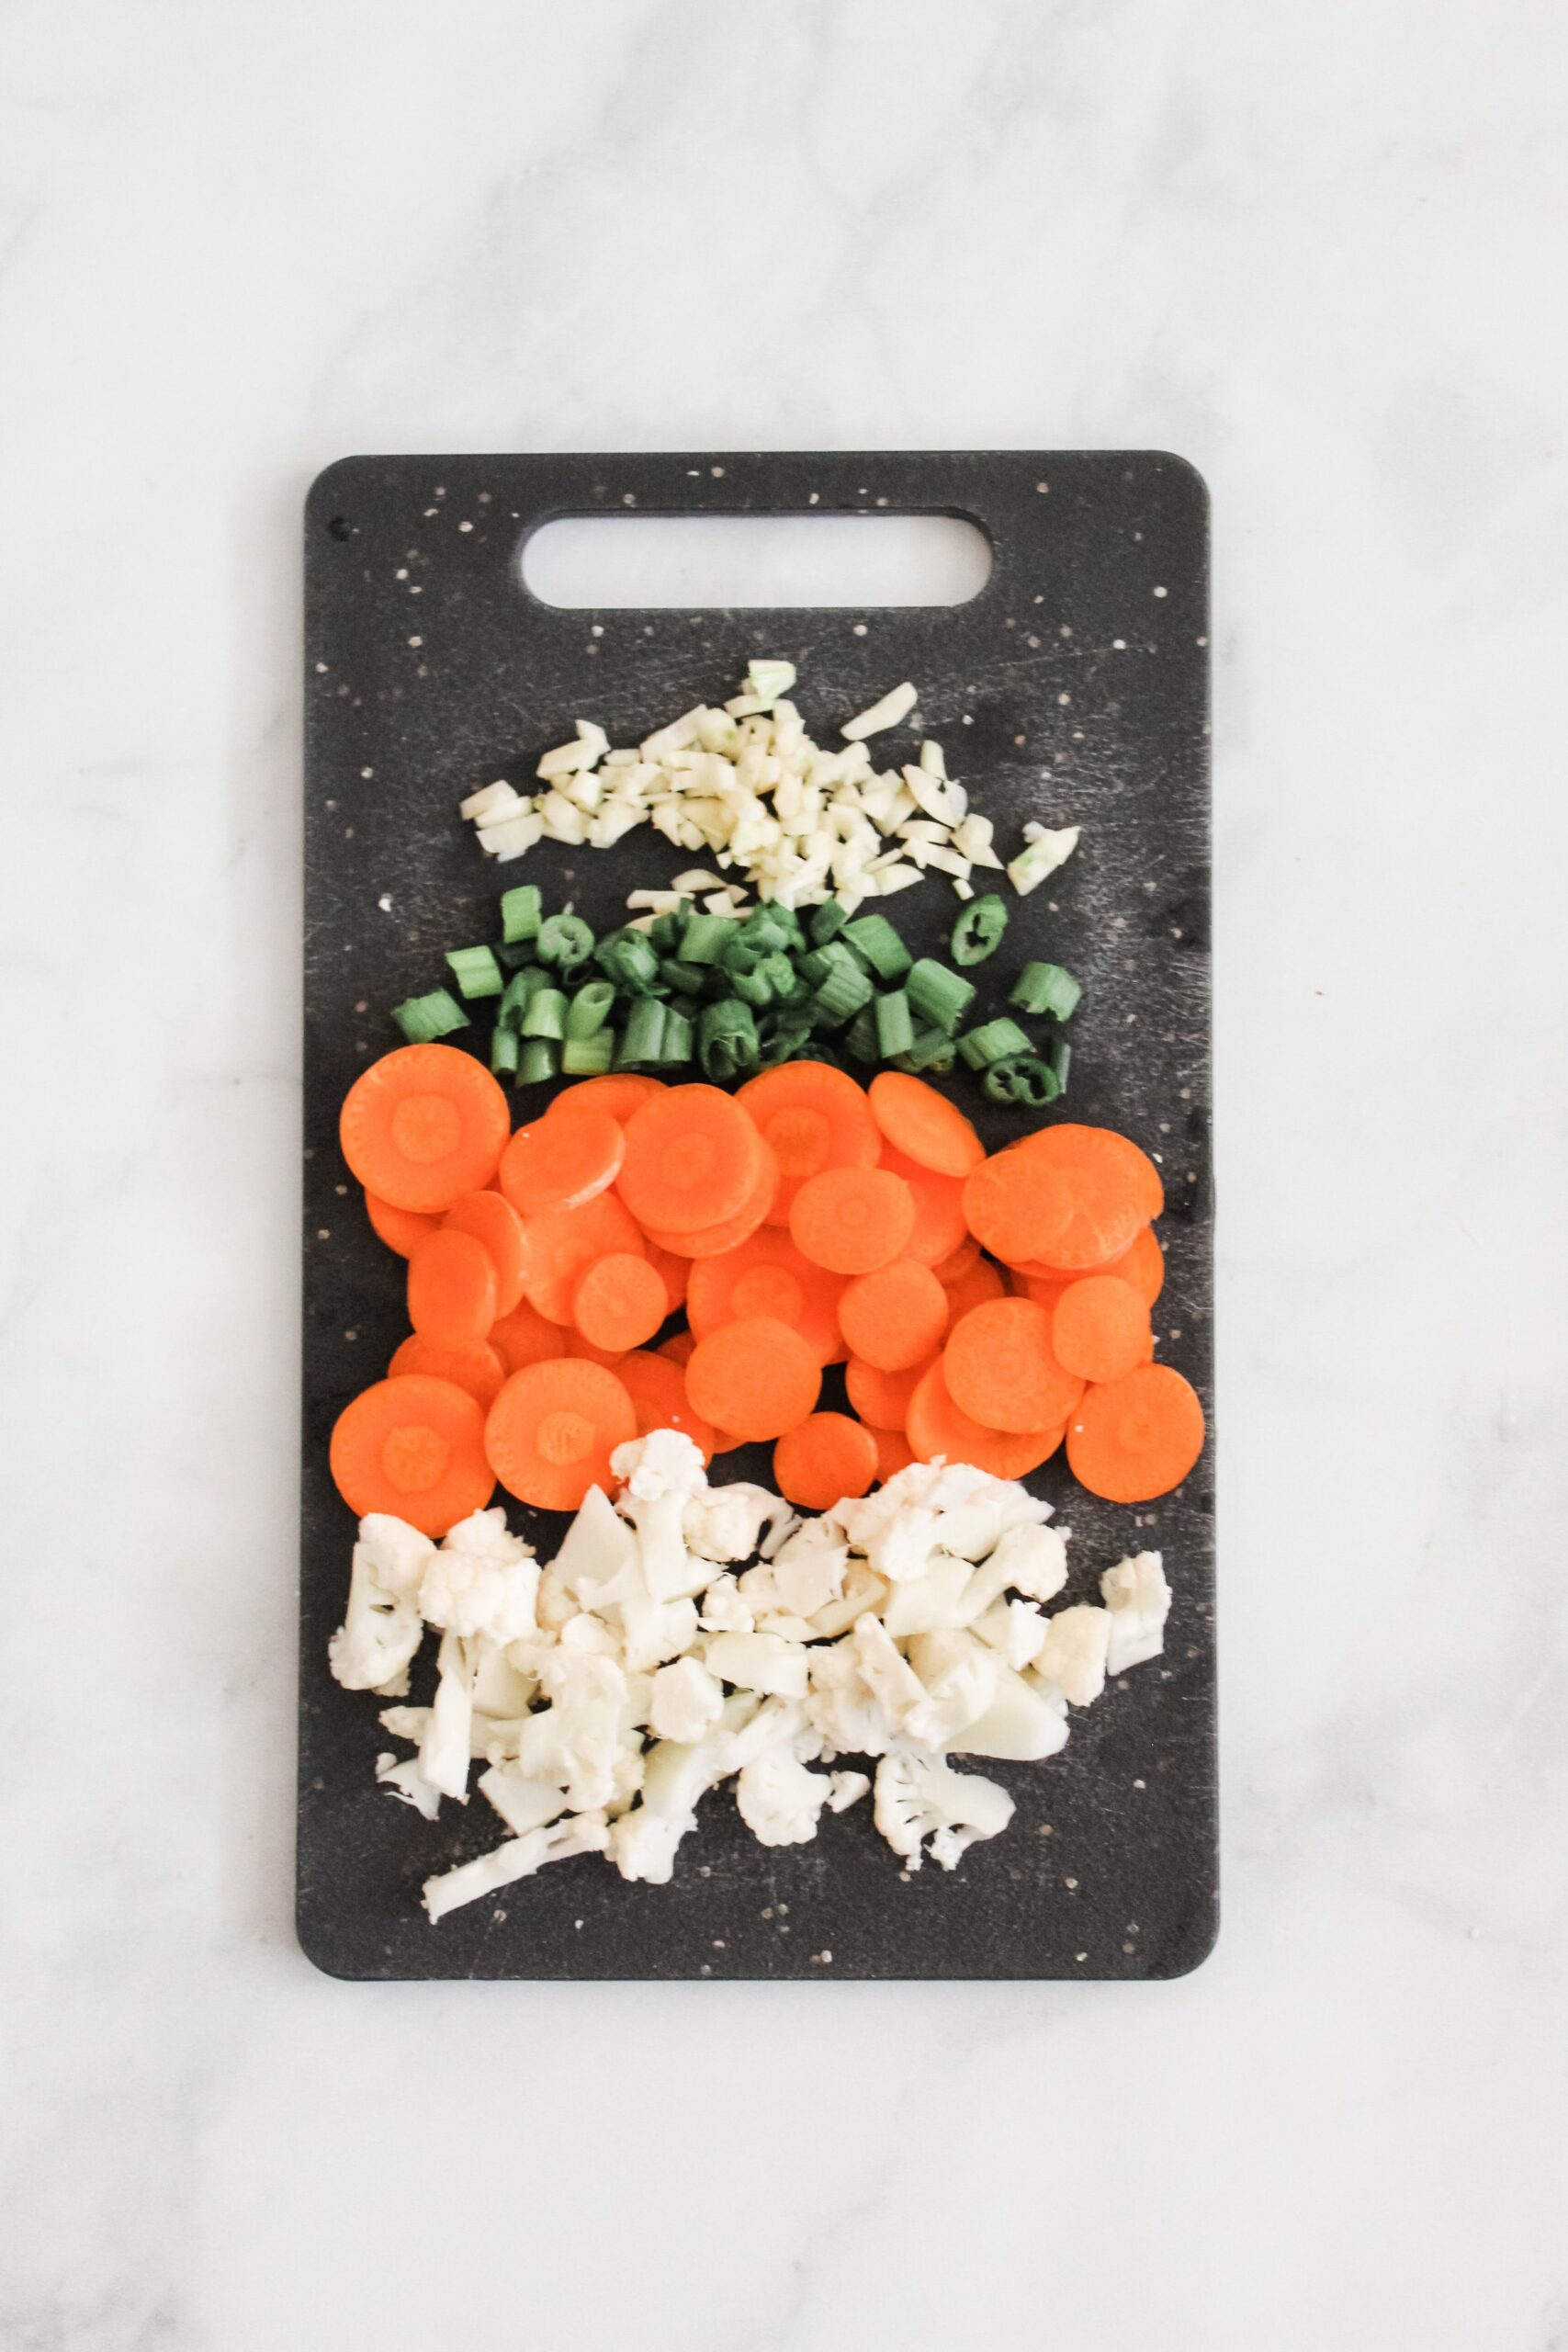 chopped up cauliflower, carrots, green onions, and ginger on black cutting board